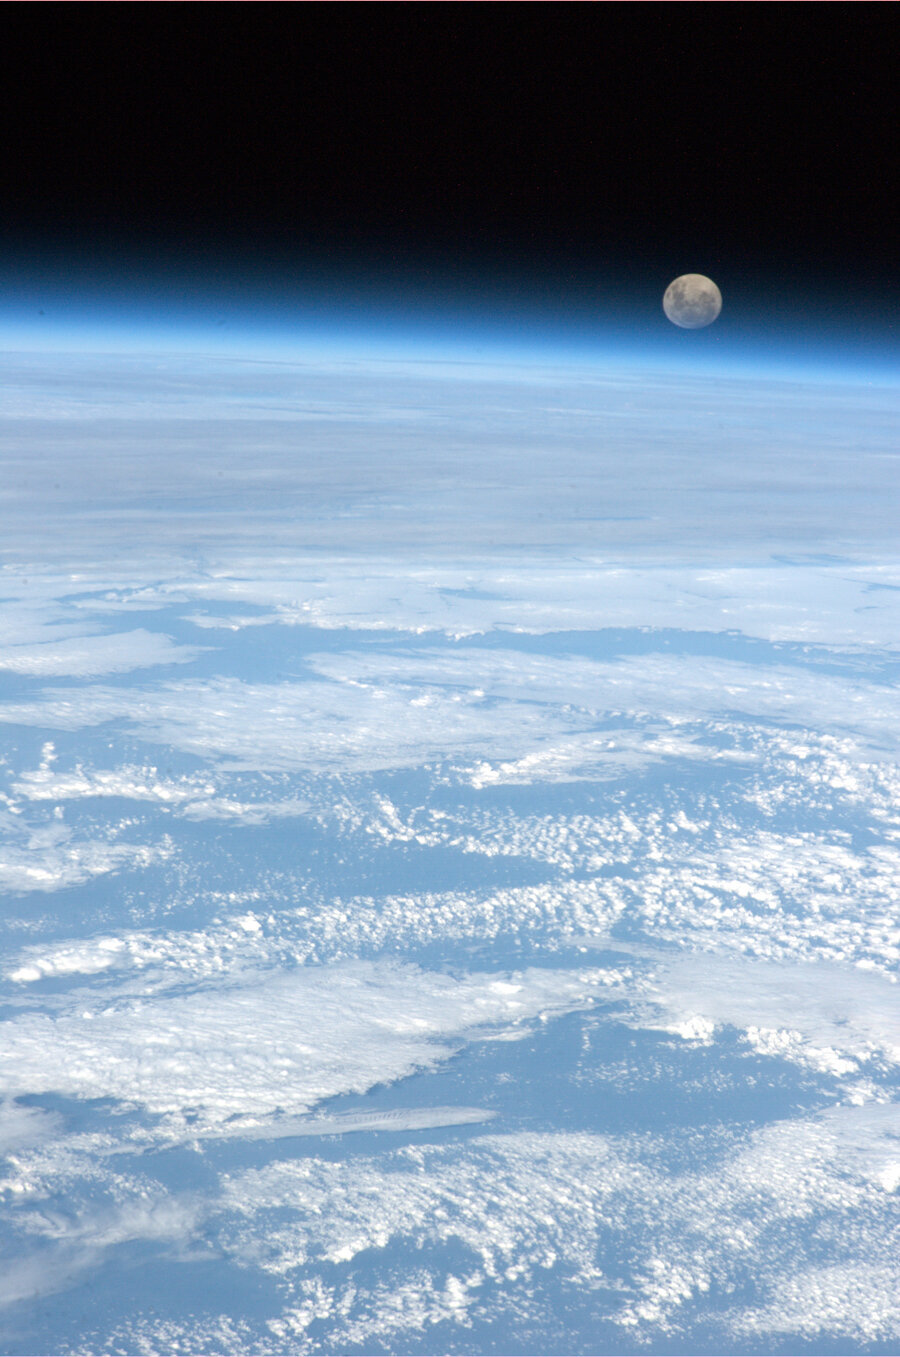 colchrishadfield:  The full moon rises over the only planet we have ever called home.  Beautiful.